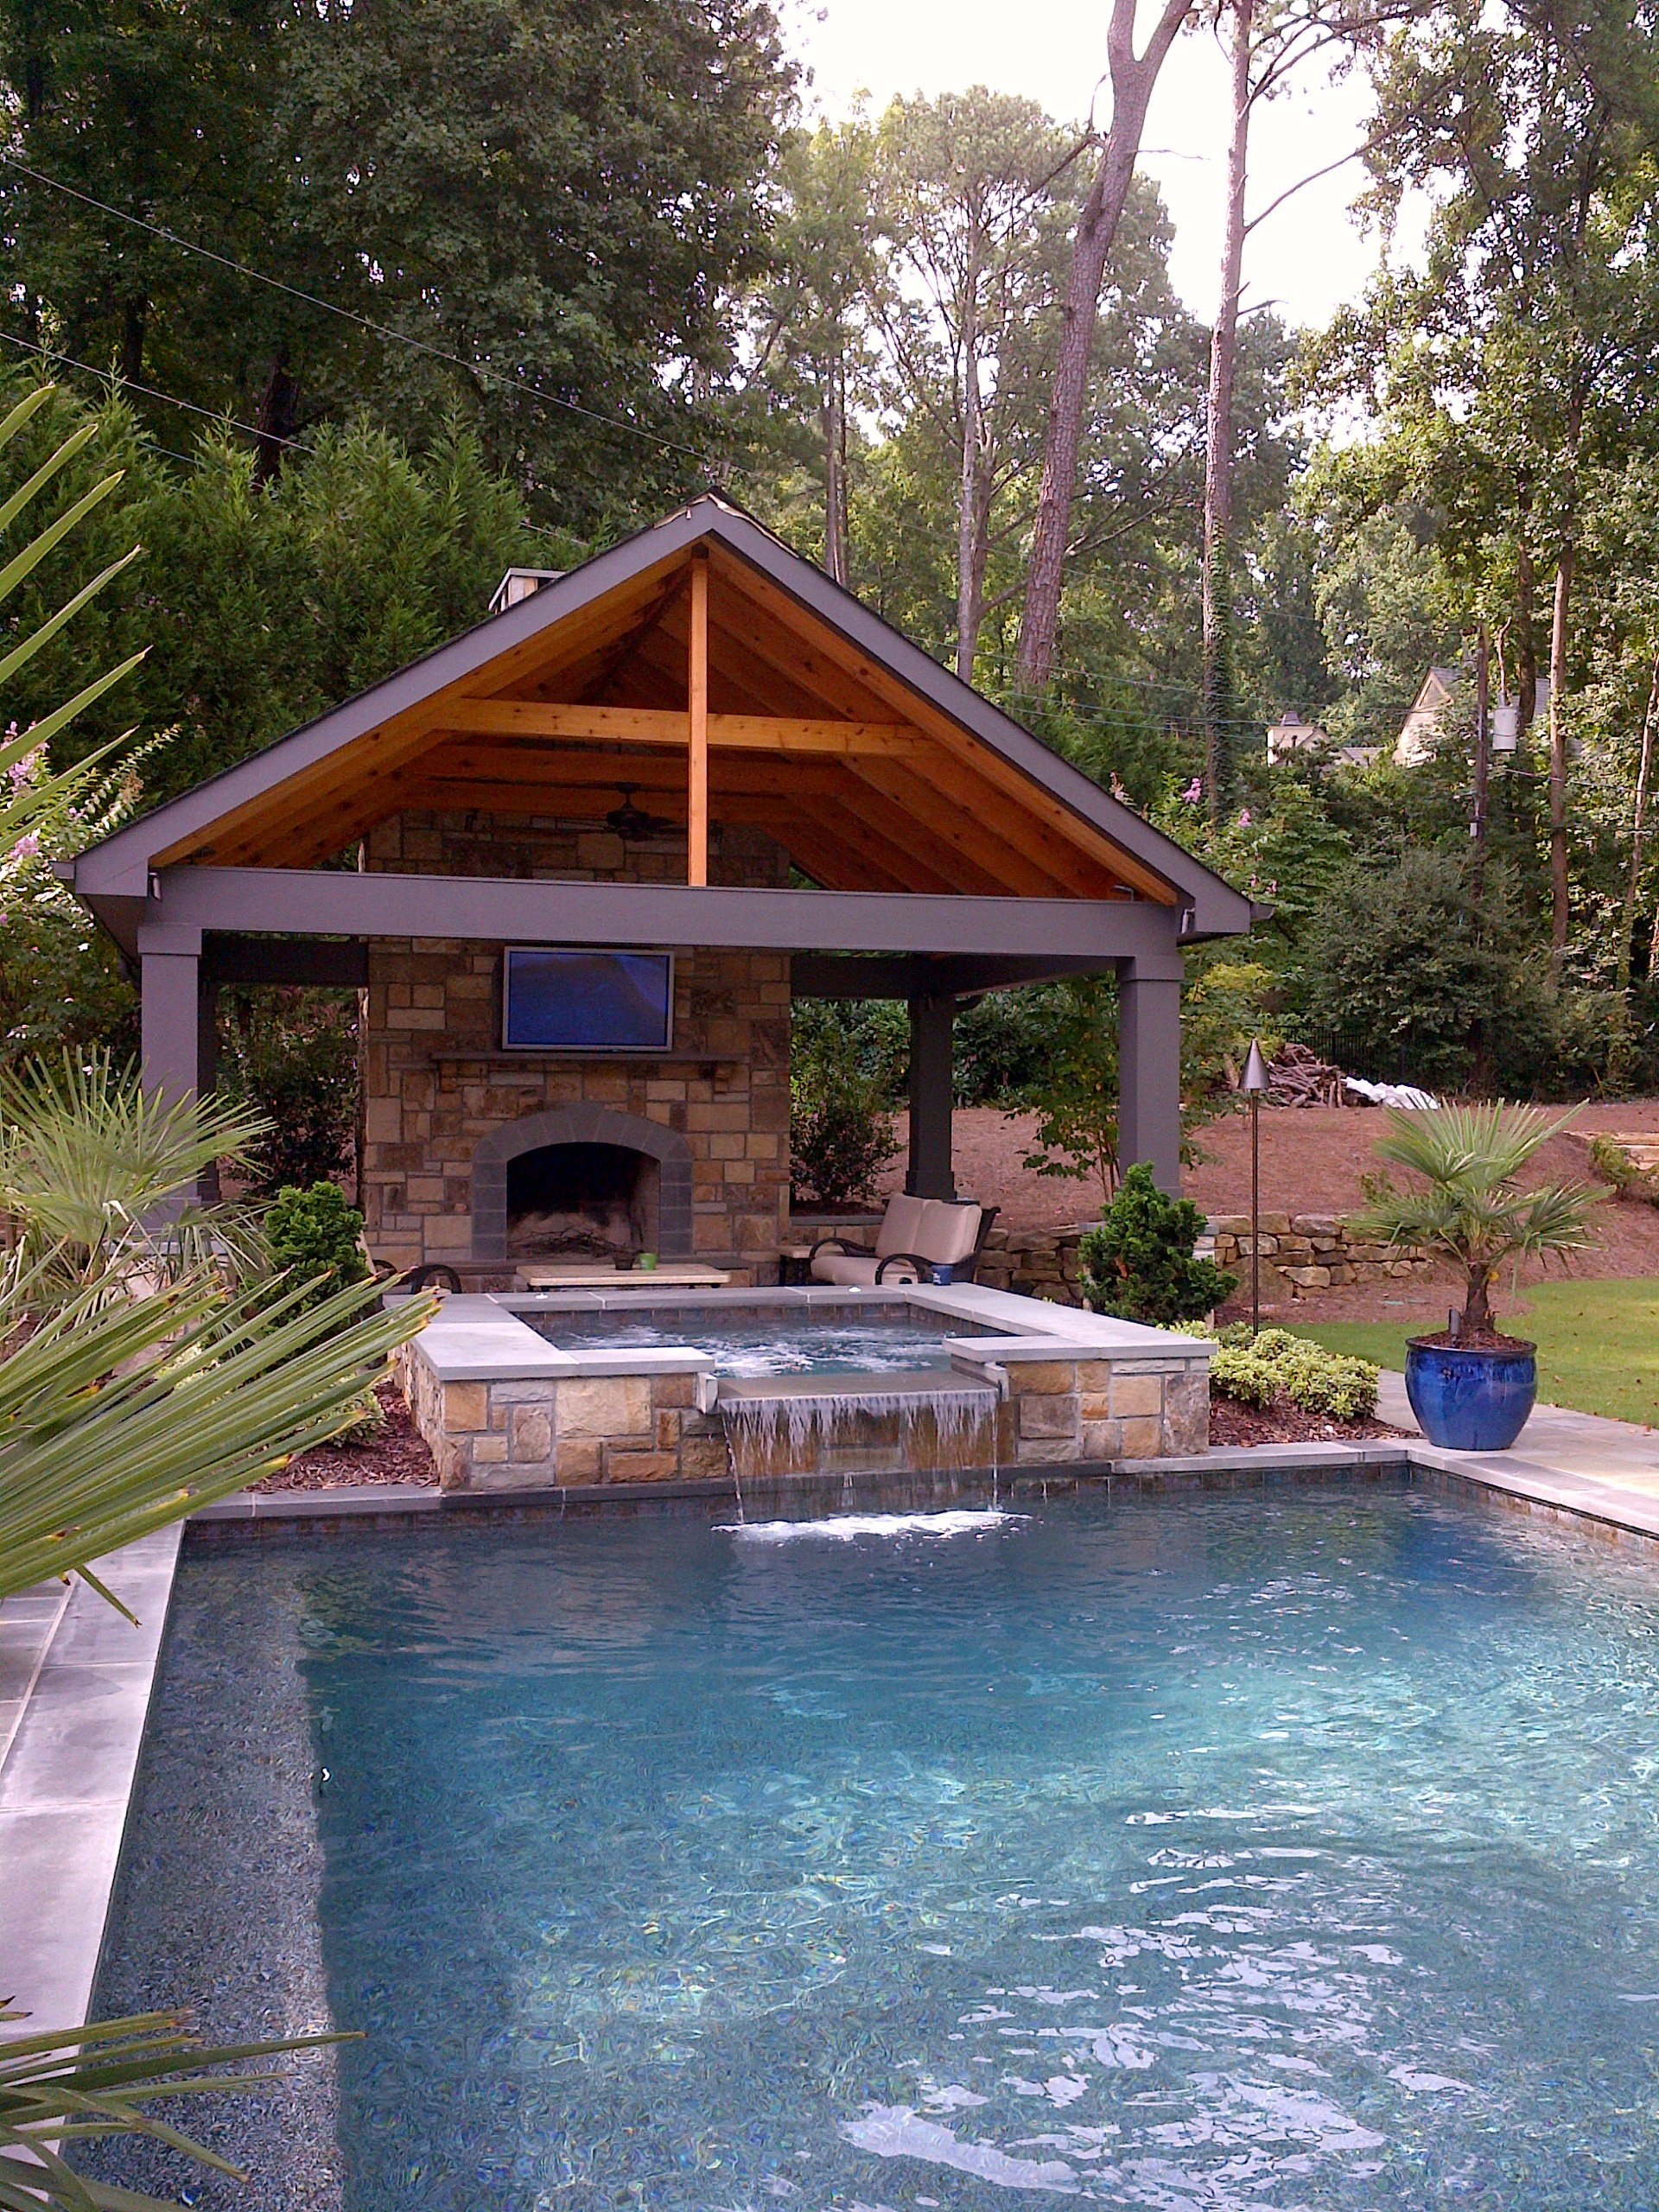 Pool and spa with a outdoor fireplace